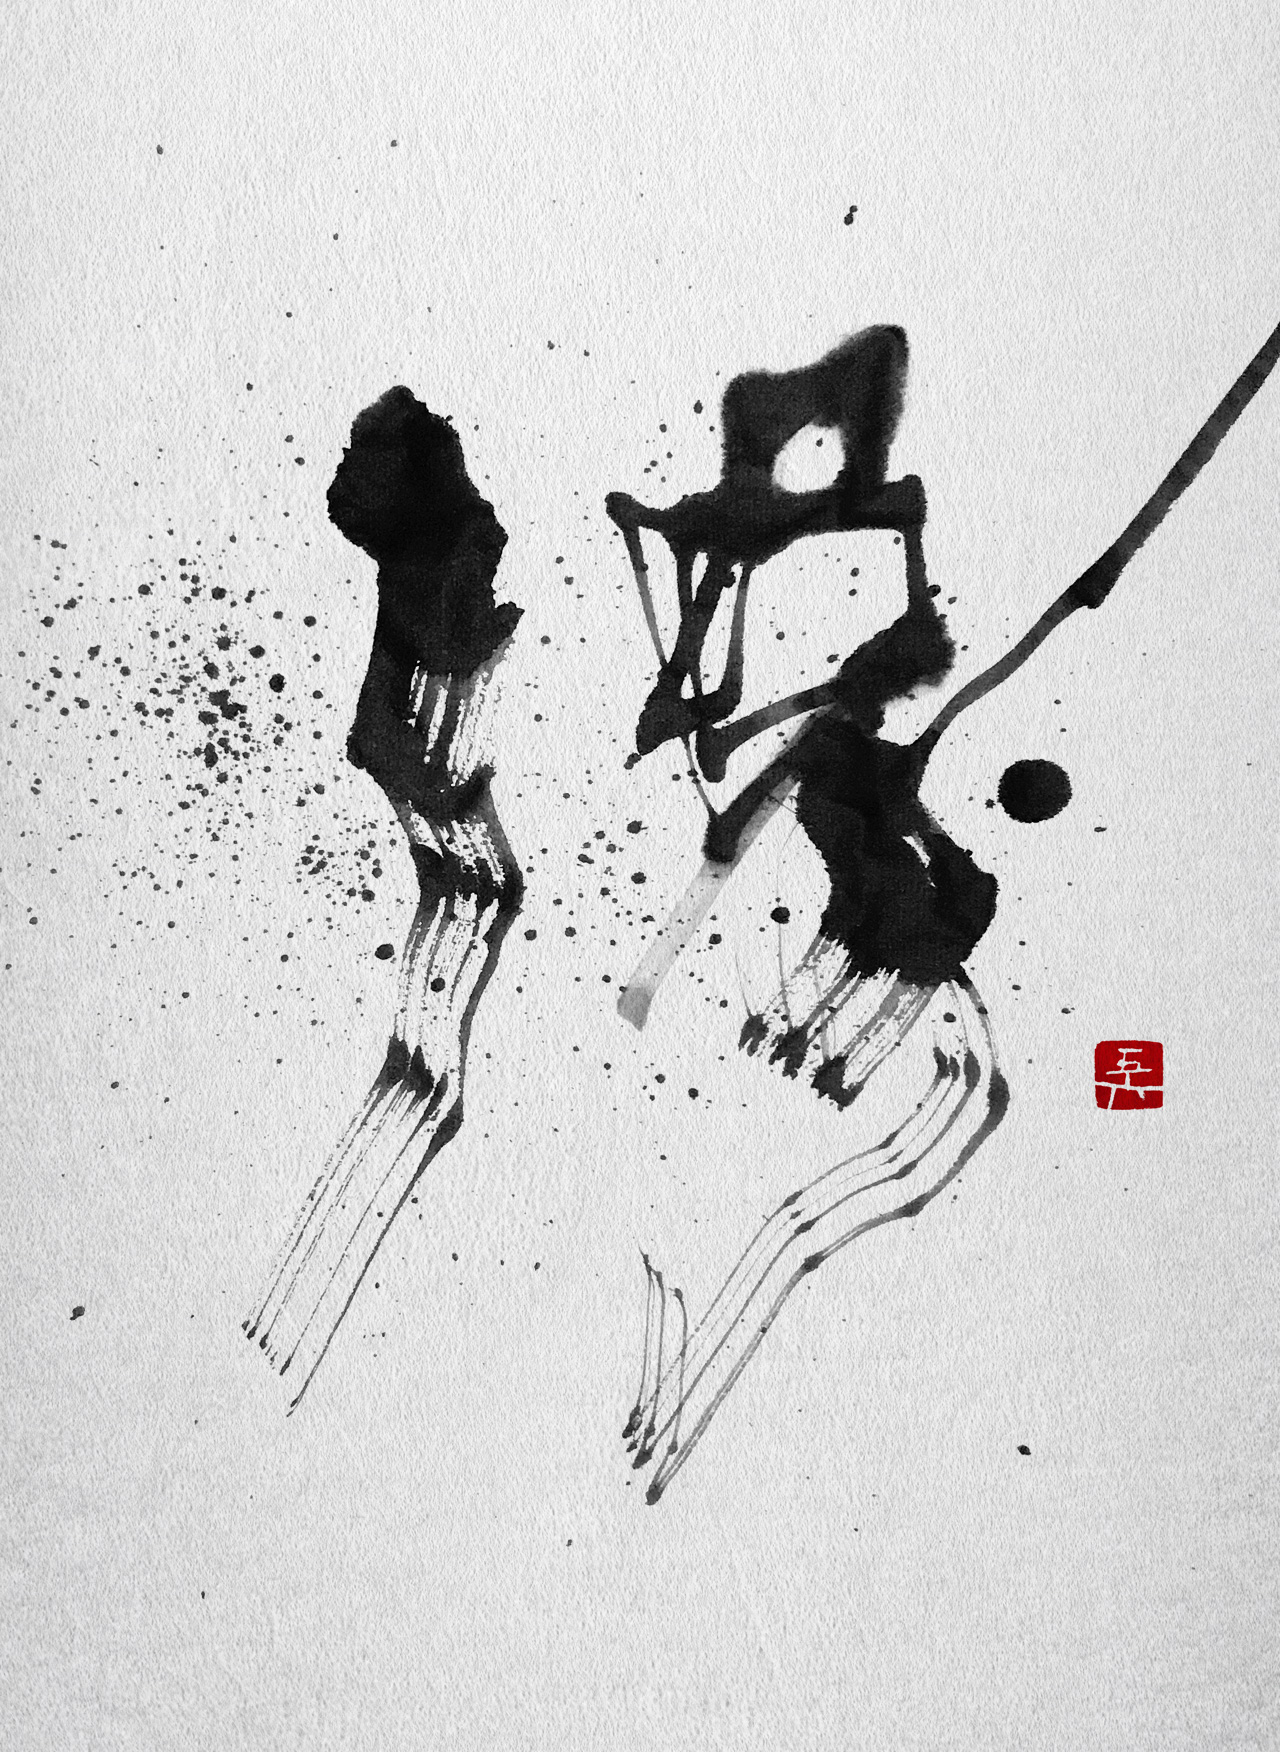 像 vision 想像即是行動的原型 書道作品 japaneseart japanesecalligraphy